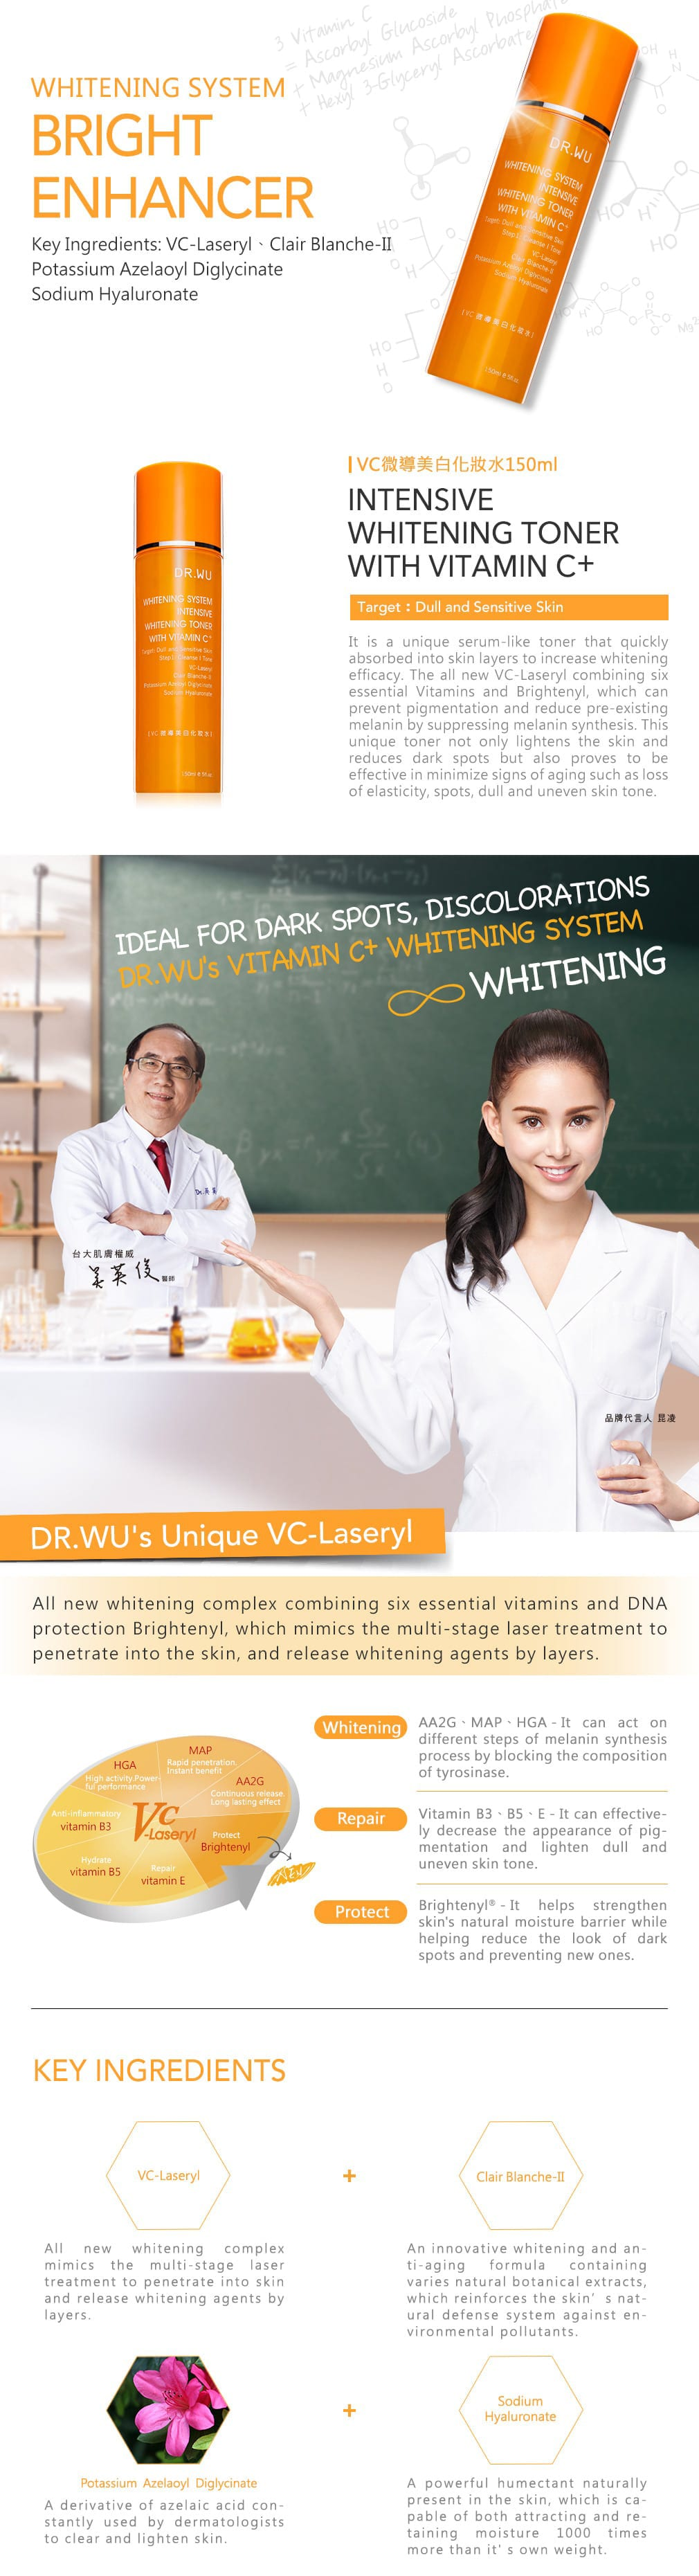 Intensive Whitening Toner - Product Information